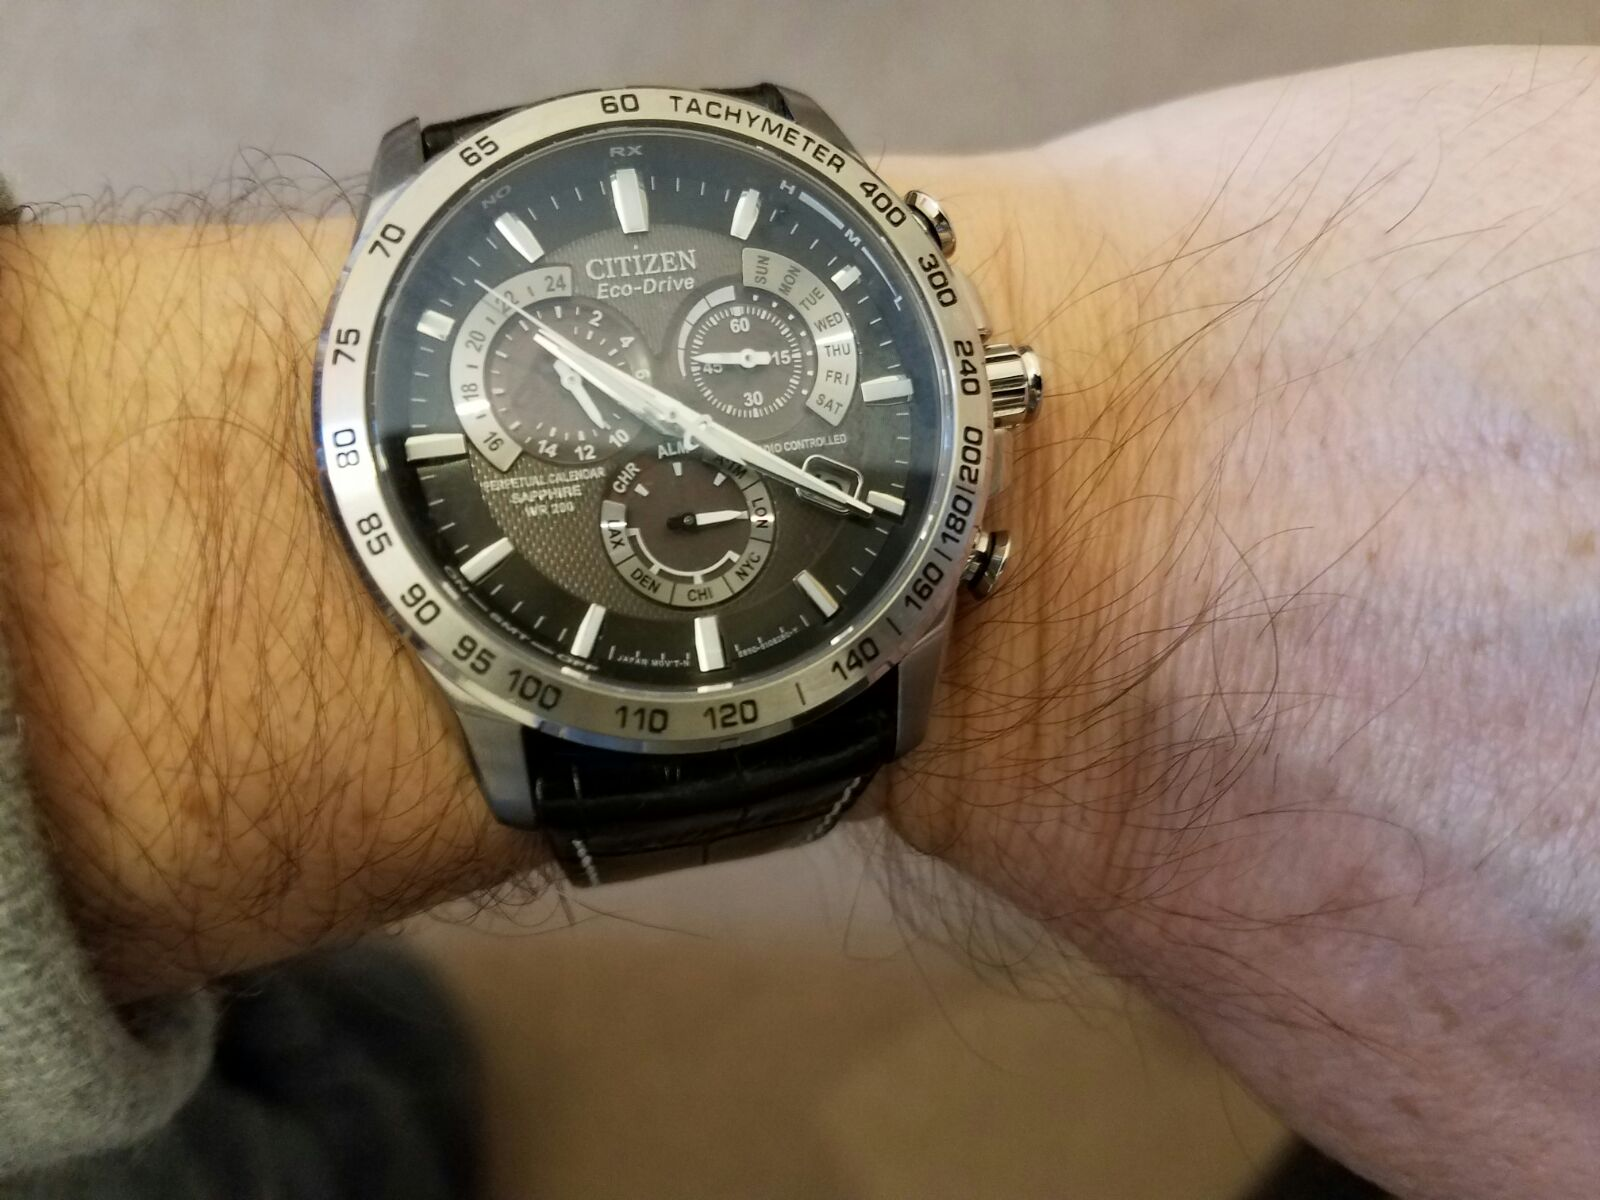 47155219d I bought this model AT4000-02E as a birthday gift for my husband a couple  of years ago. He absolutely loved it. Unfortunately, he lost this one and  we ...